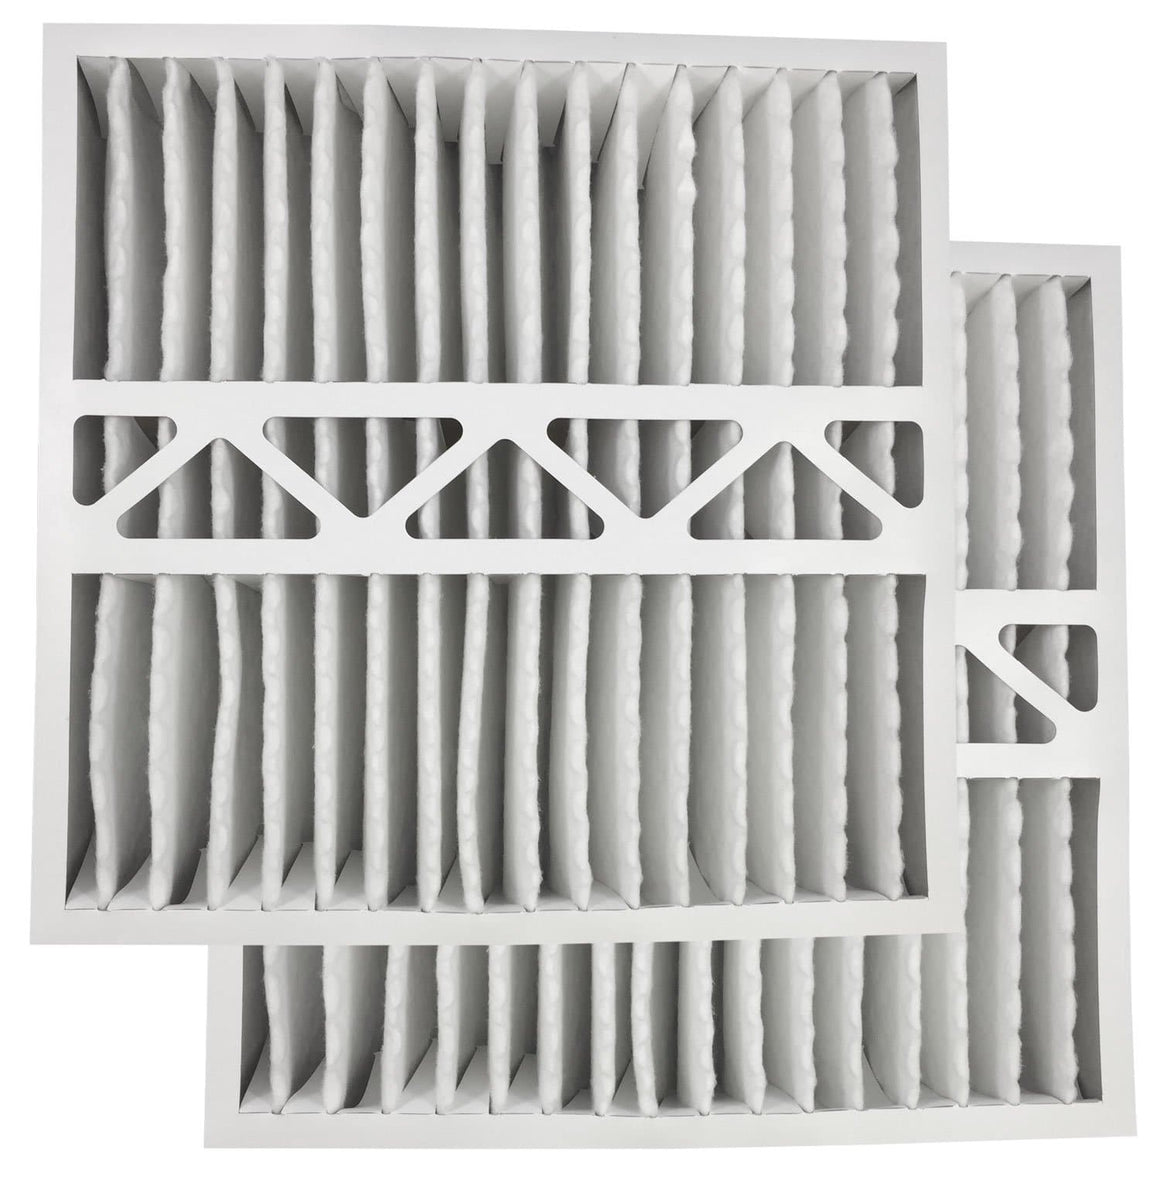 Atomic FC100A1011 20x20x4 MERV 11 Honeywell Replacement Furnace Filter - 2 Pack